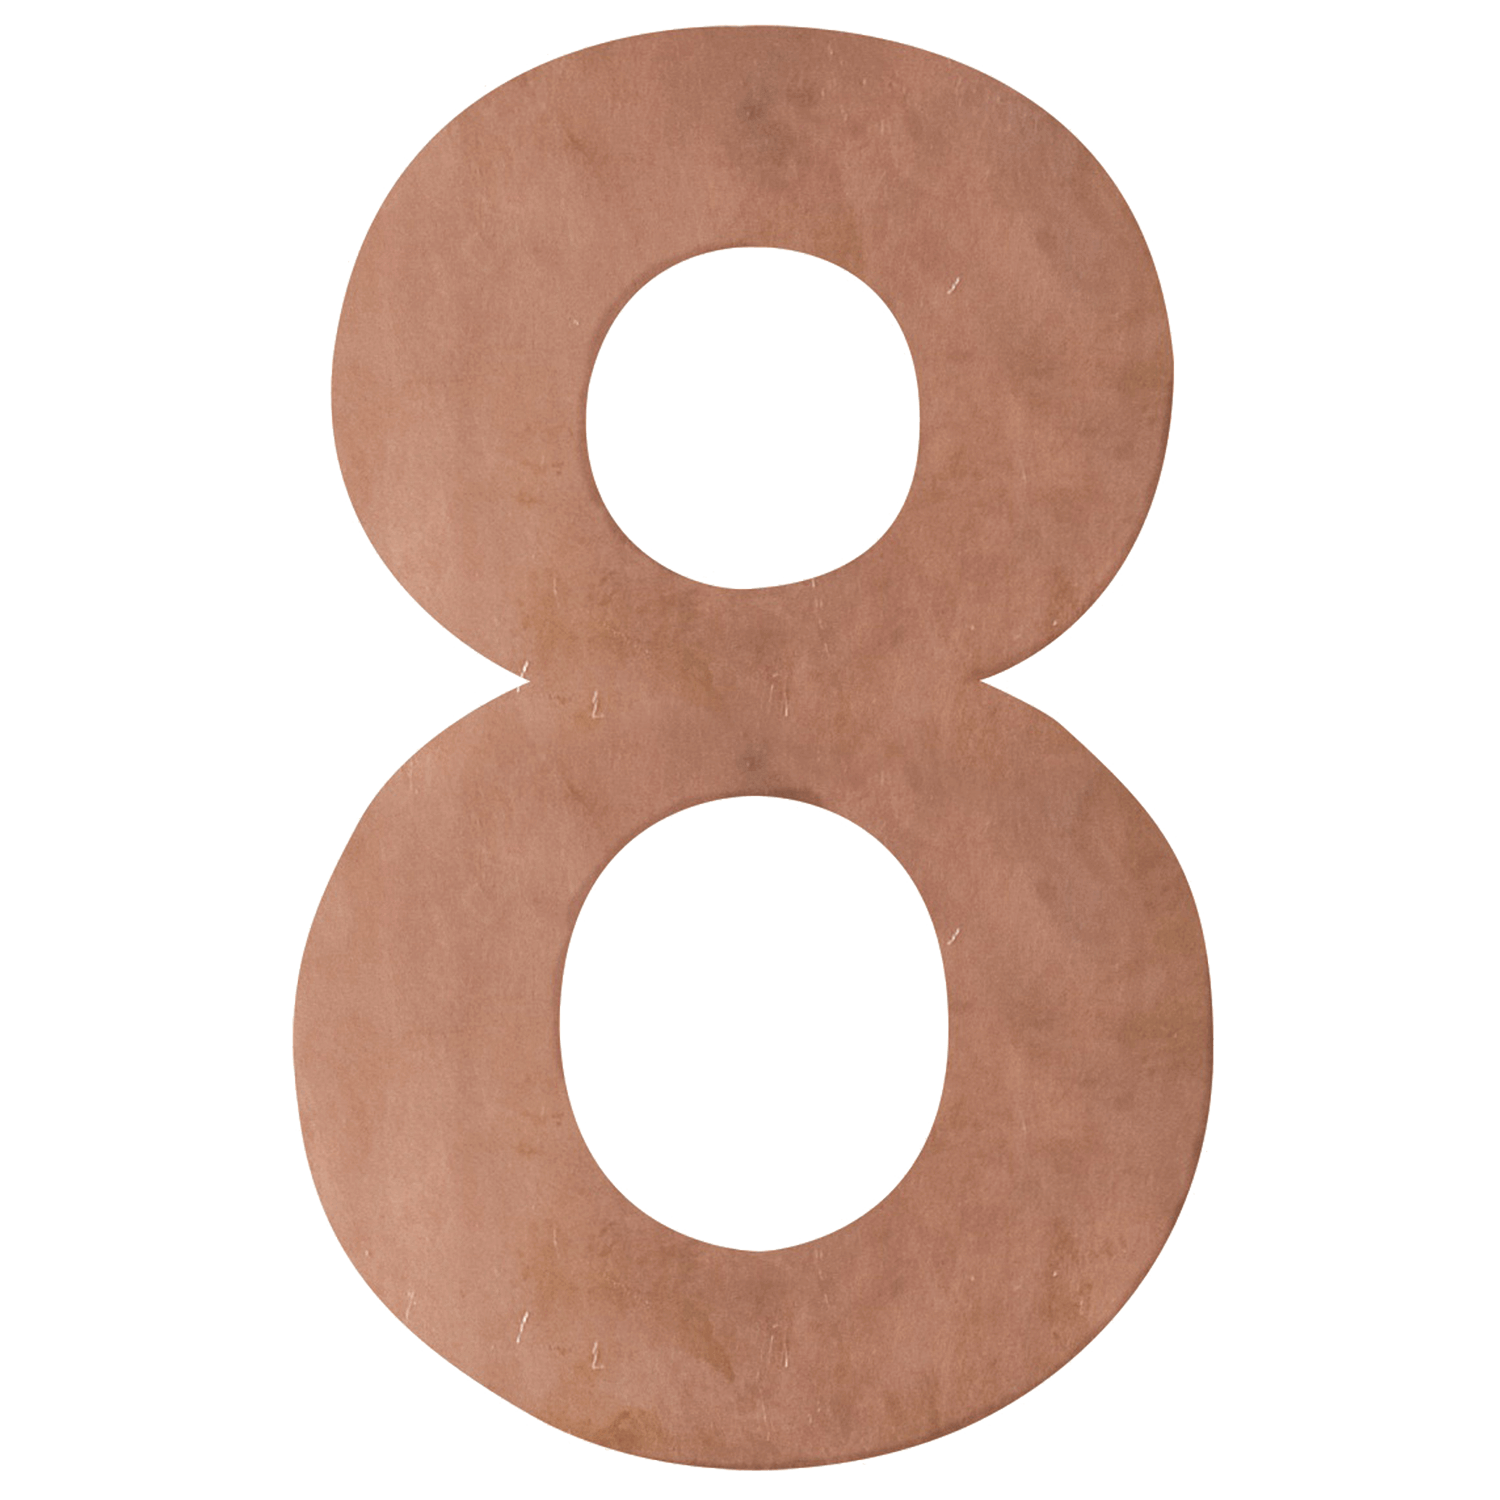 Mailbox clipart buzon. Numbers letters copper wall